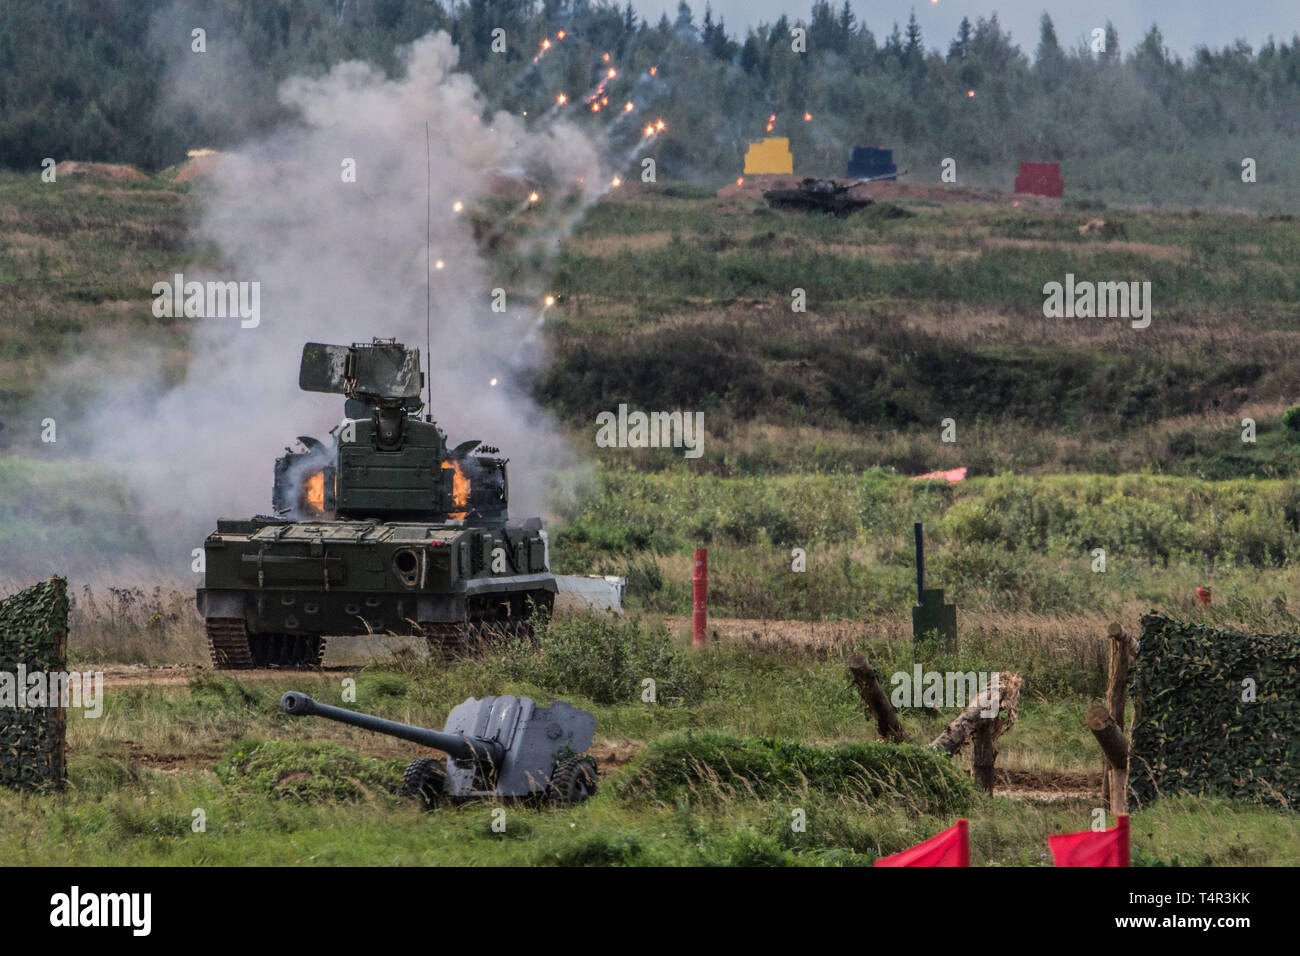 September 9, 2016. Alabino, Russia. SPAA 2K22 Tunguska firing with auto-canon at targets at the Alabino range. - Stock Image